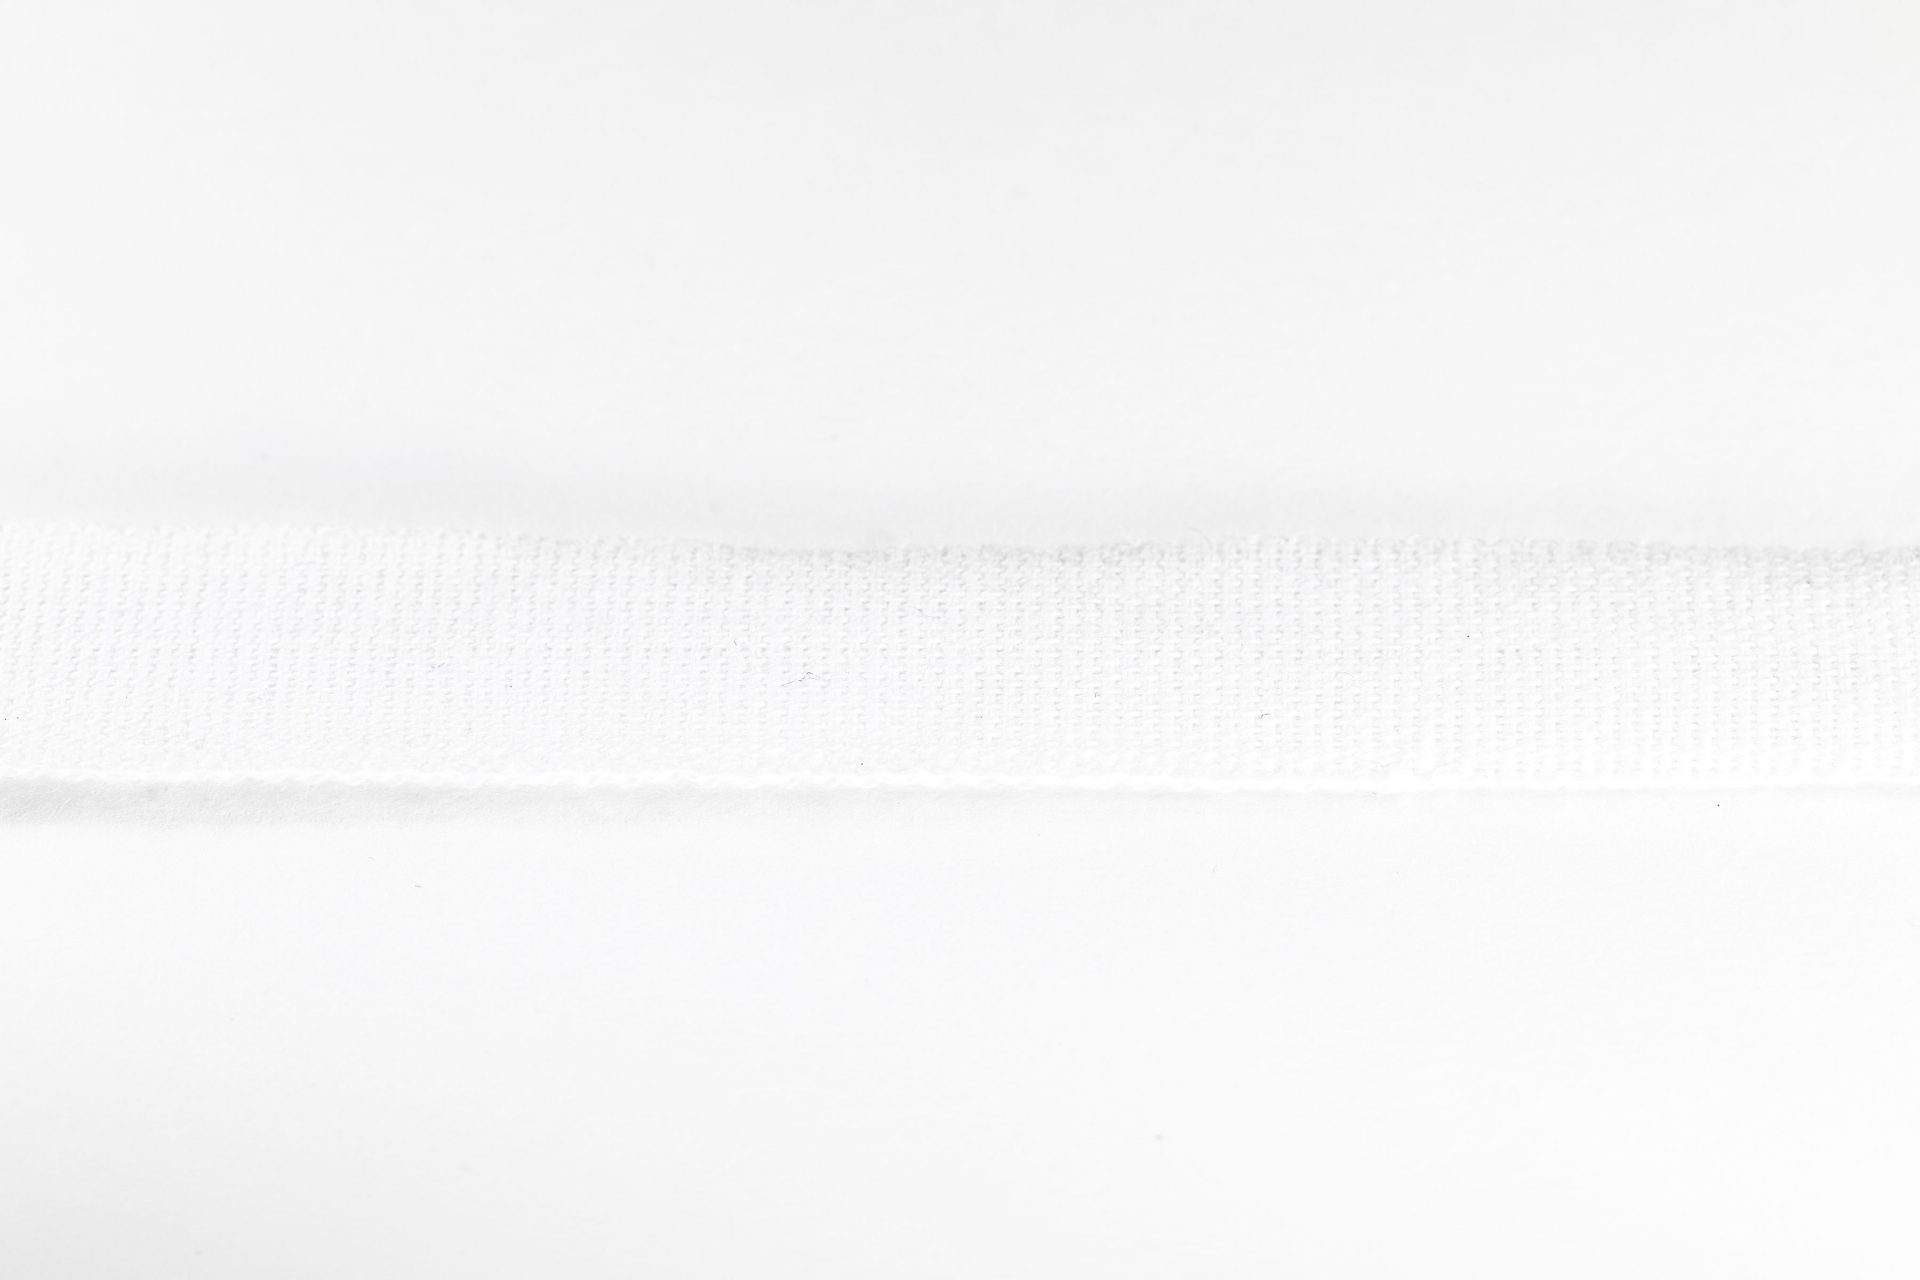 1001-12W_0001 12mm white cotton tape (Medical - trachy cord)